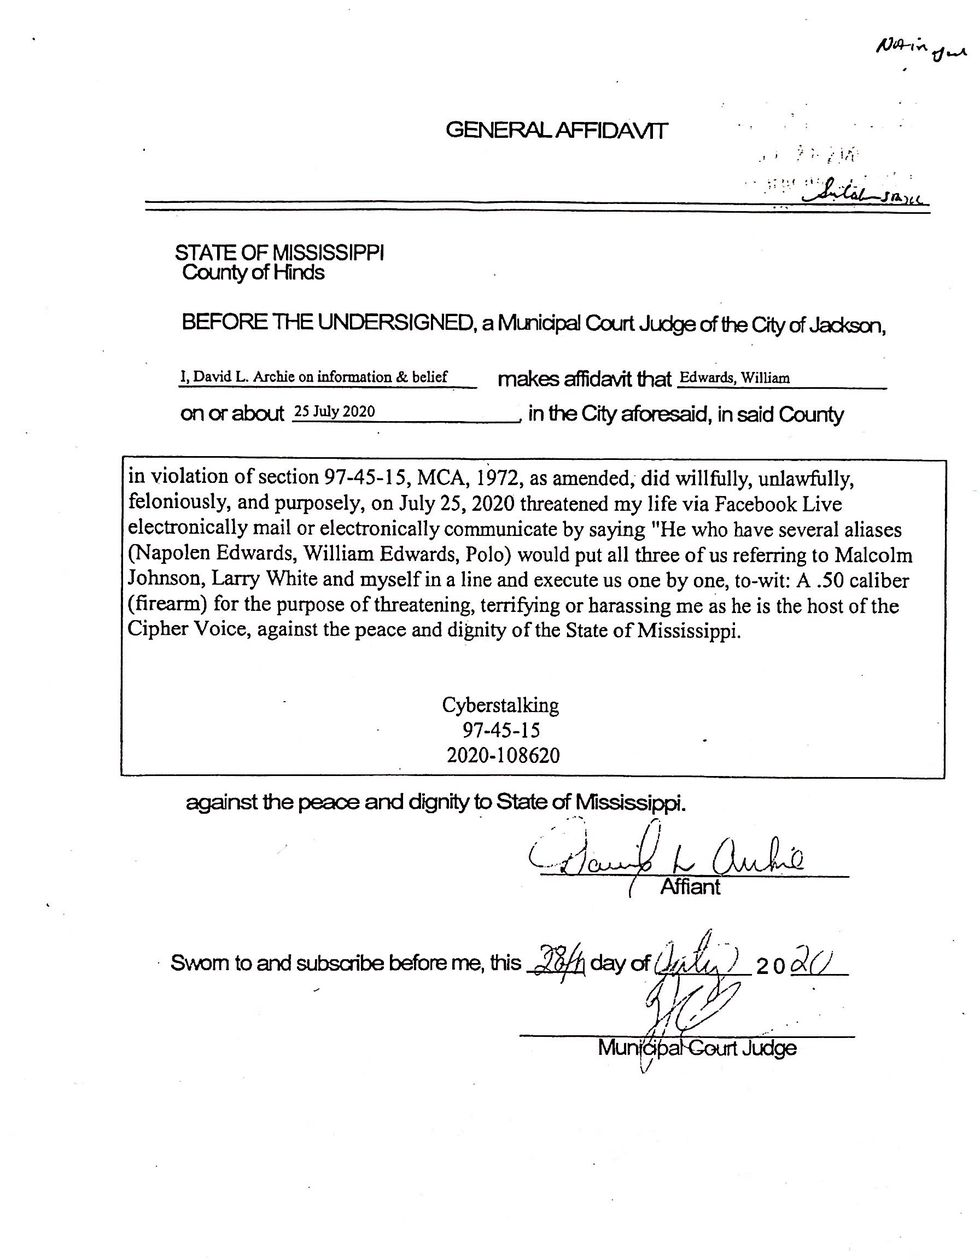 Exclusive: Documents show why radio host remained behind bars a full day after posting bond